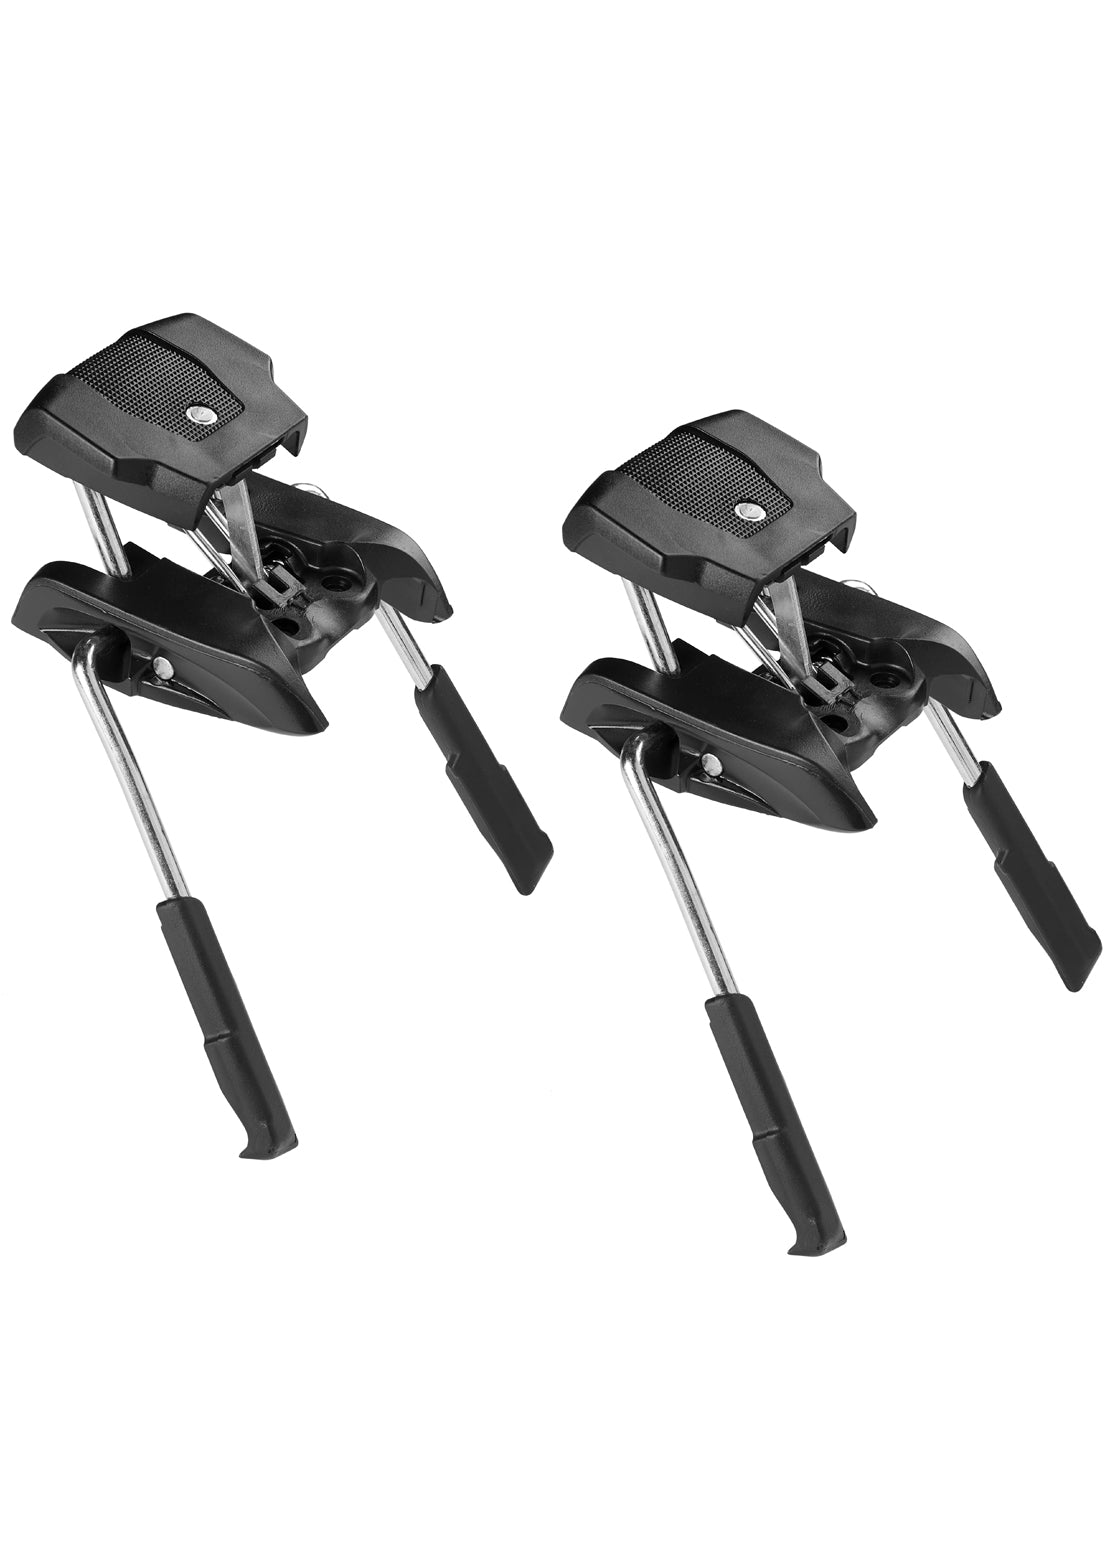 Tyrolia Power Brake2 Race Pro Ski Brake